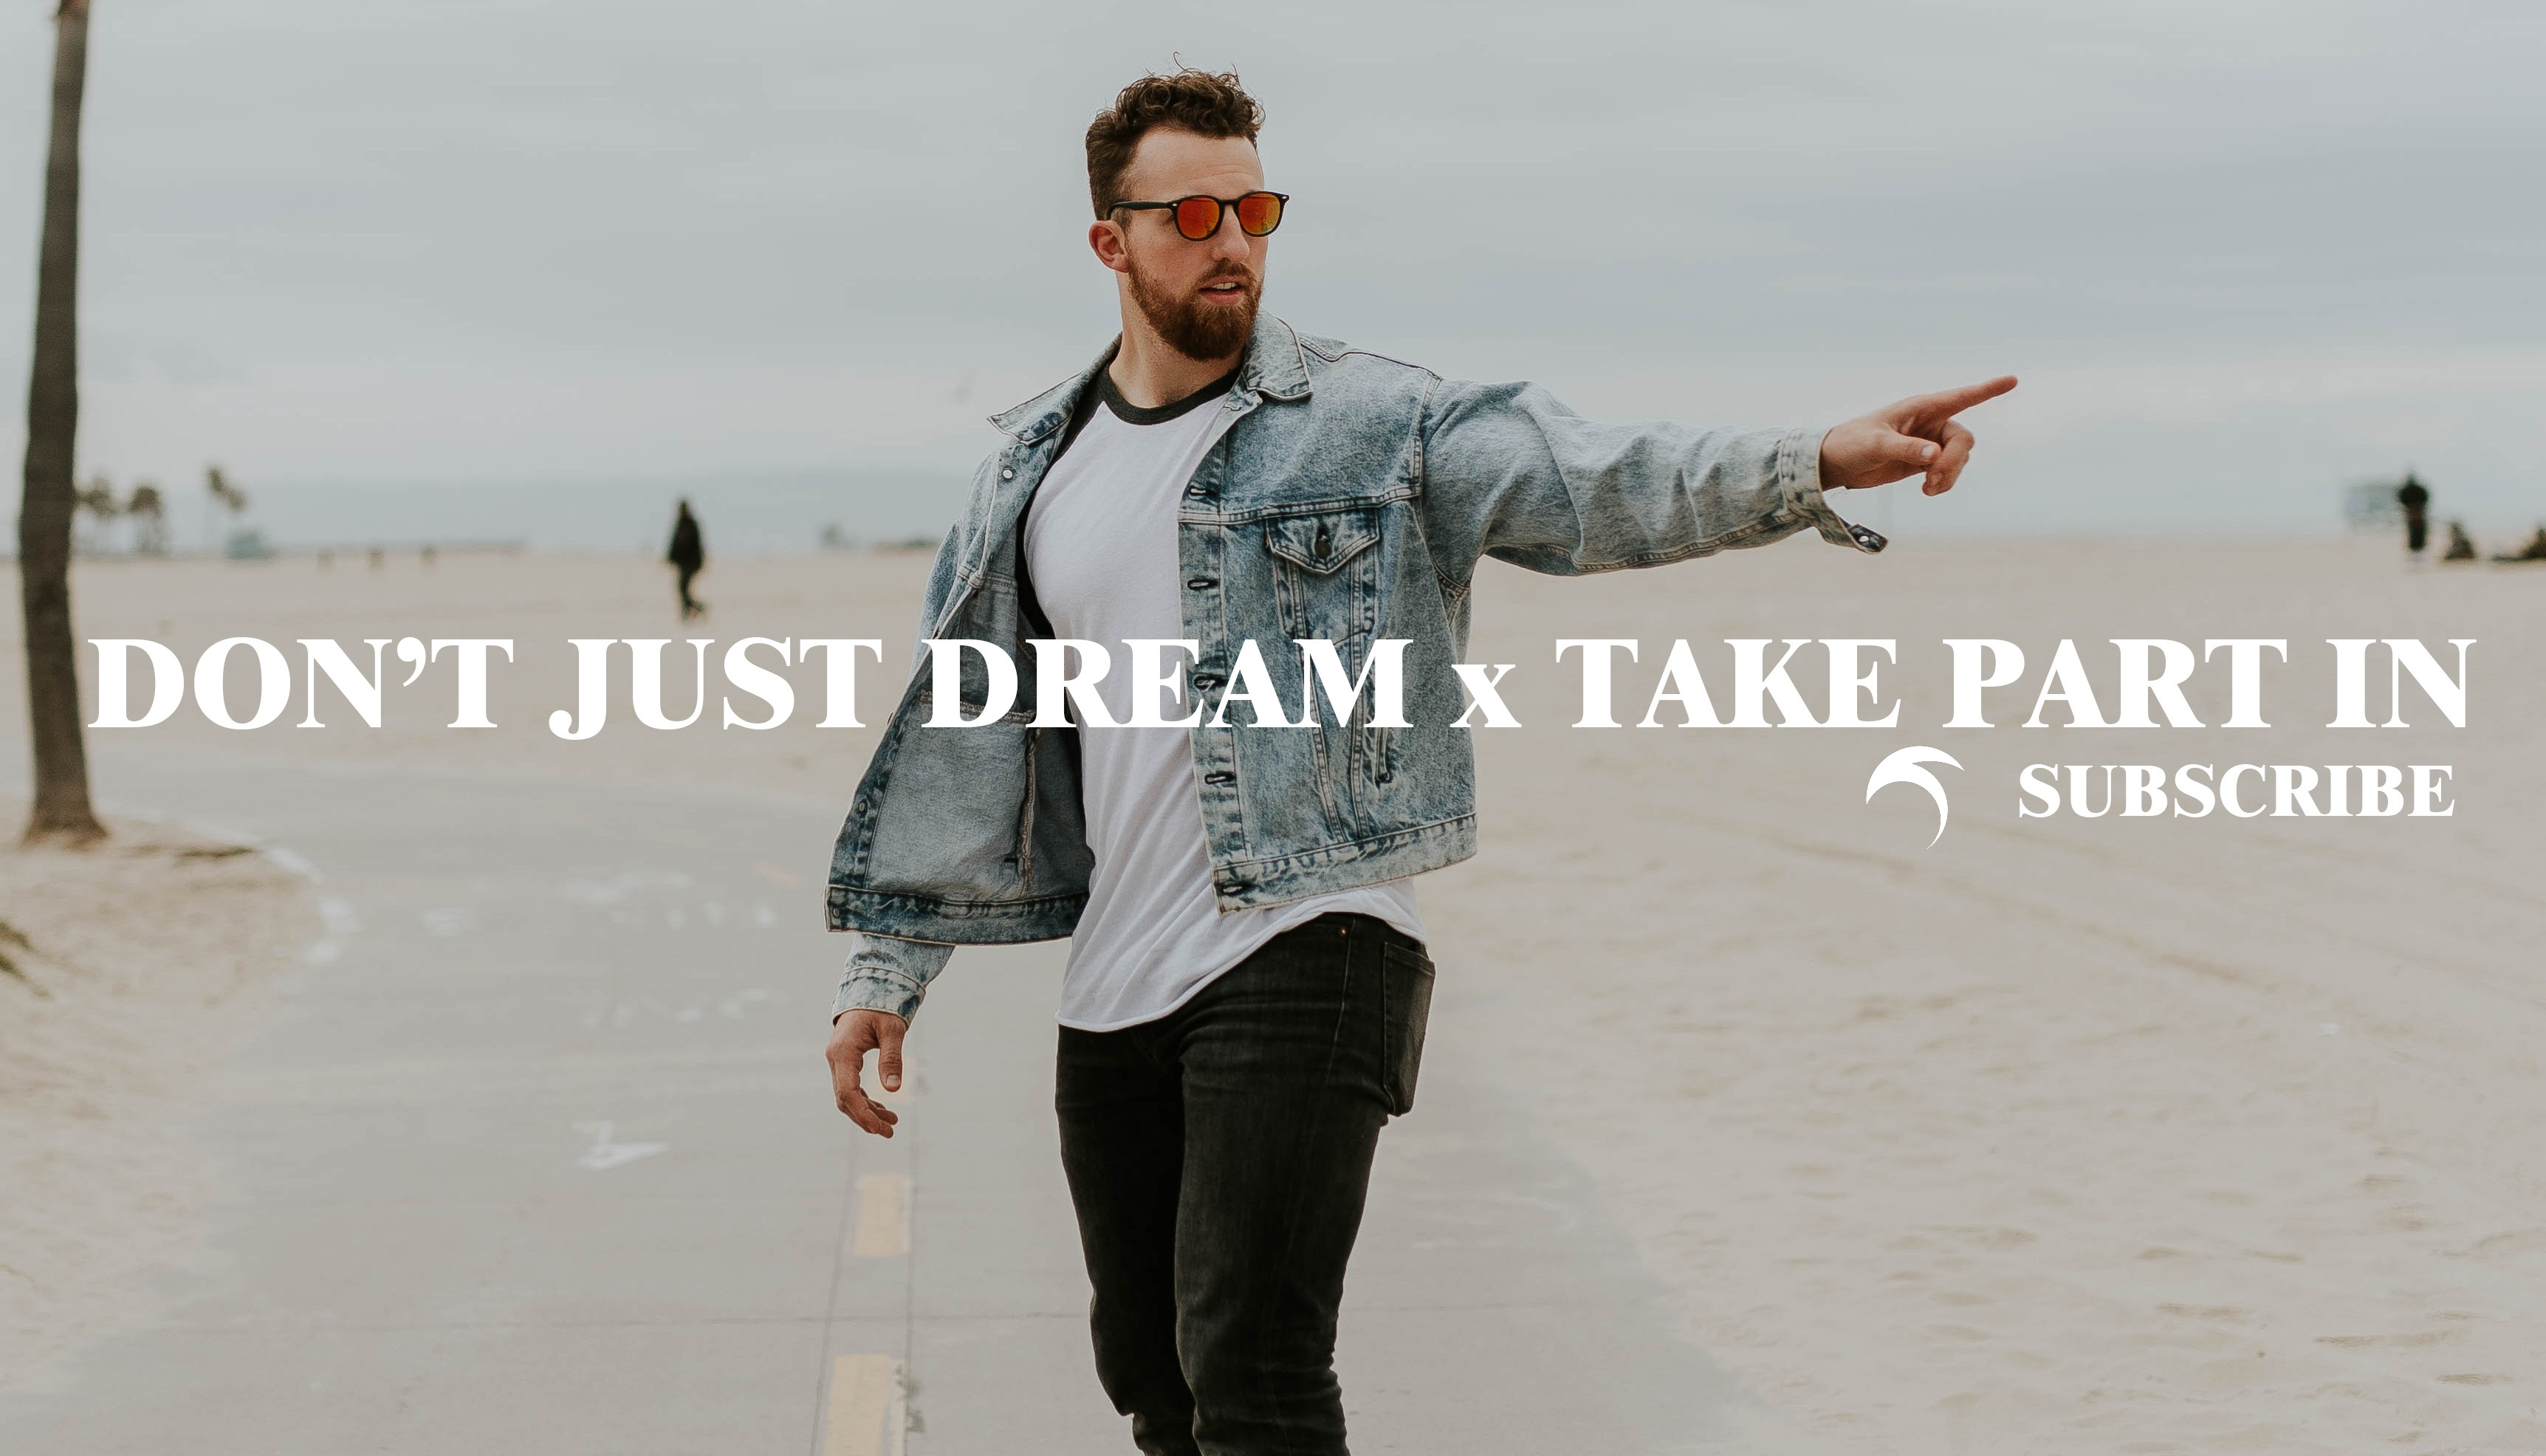 Don't Just Dream x Take Part In - Subscribe